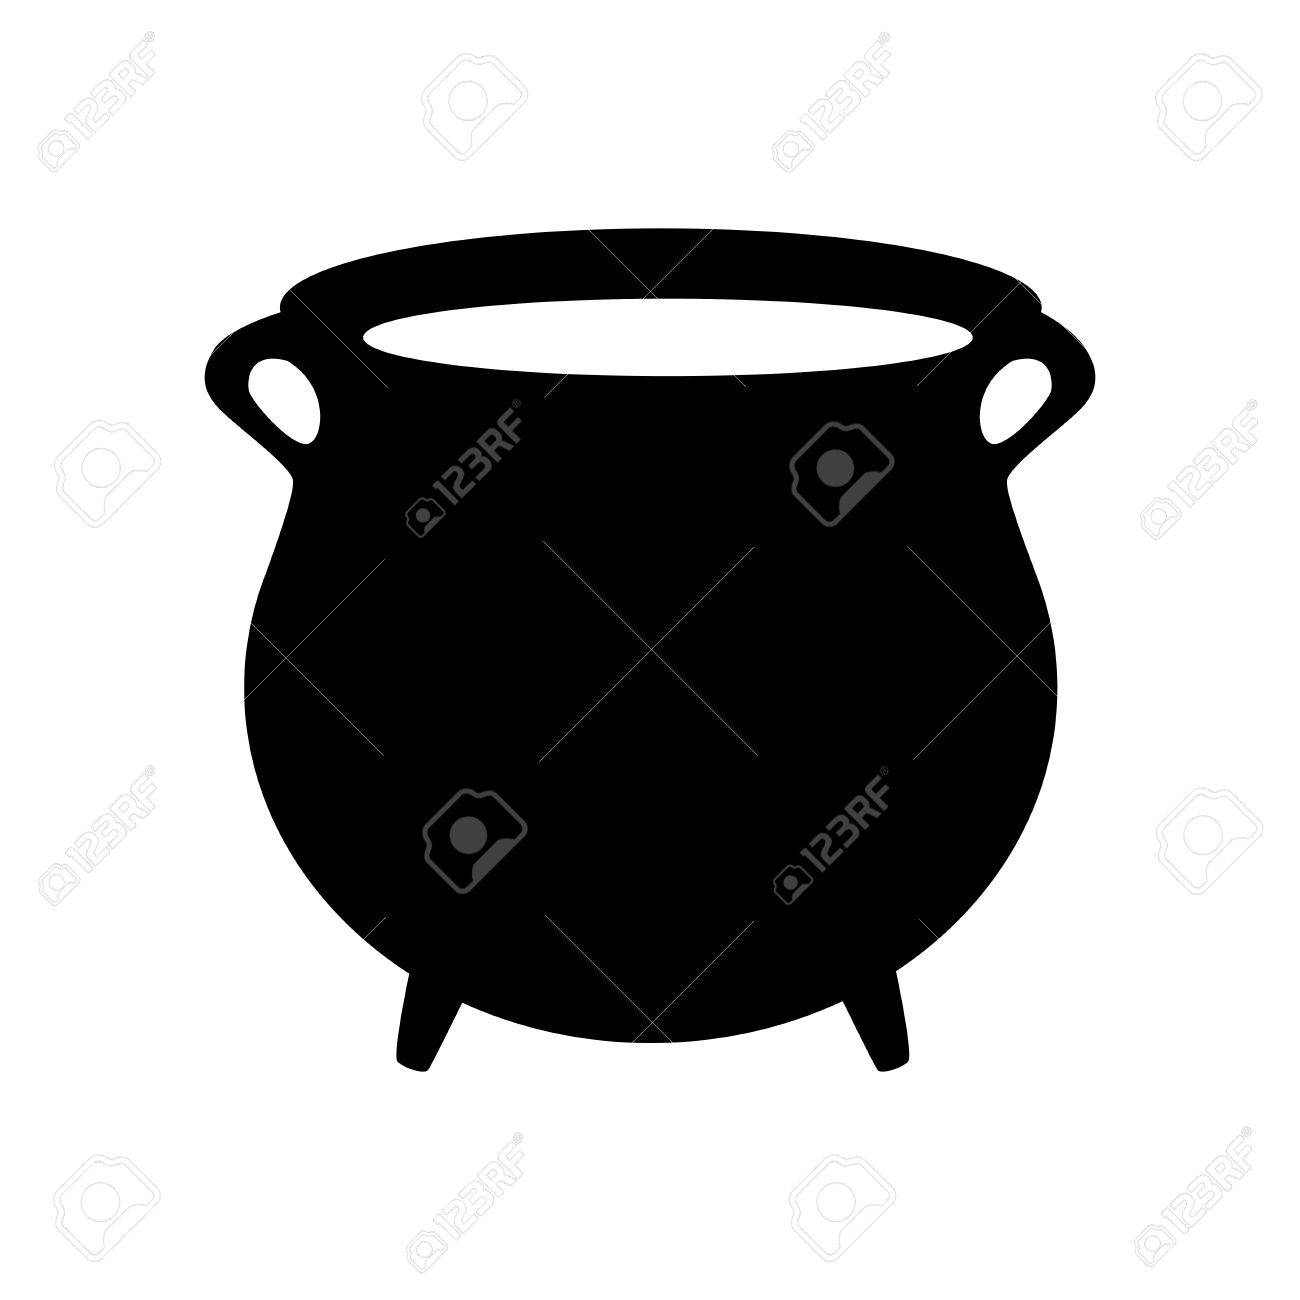 1300x1300 Empty Witch Cauldron, Pot Silhouette. Vector Illustration Isolated